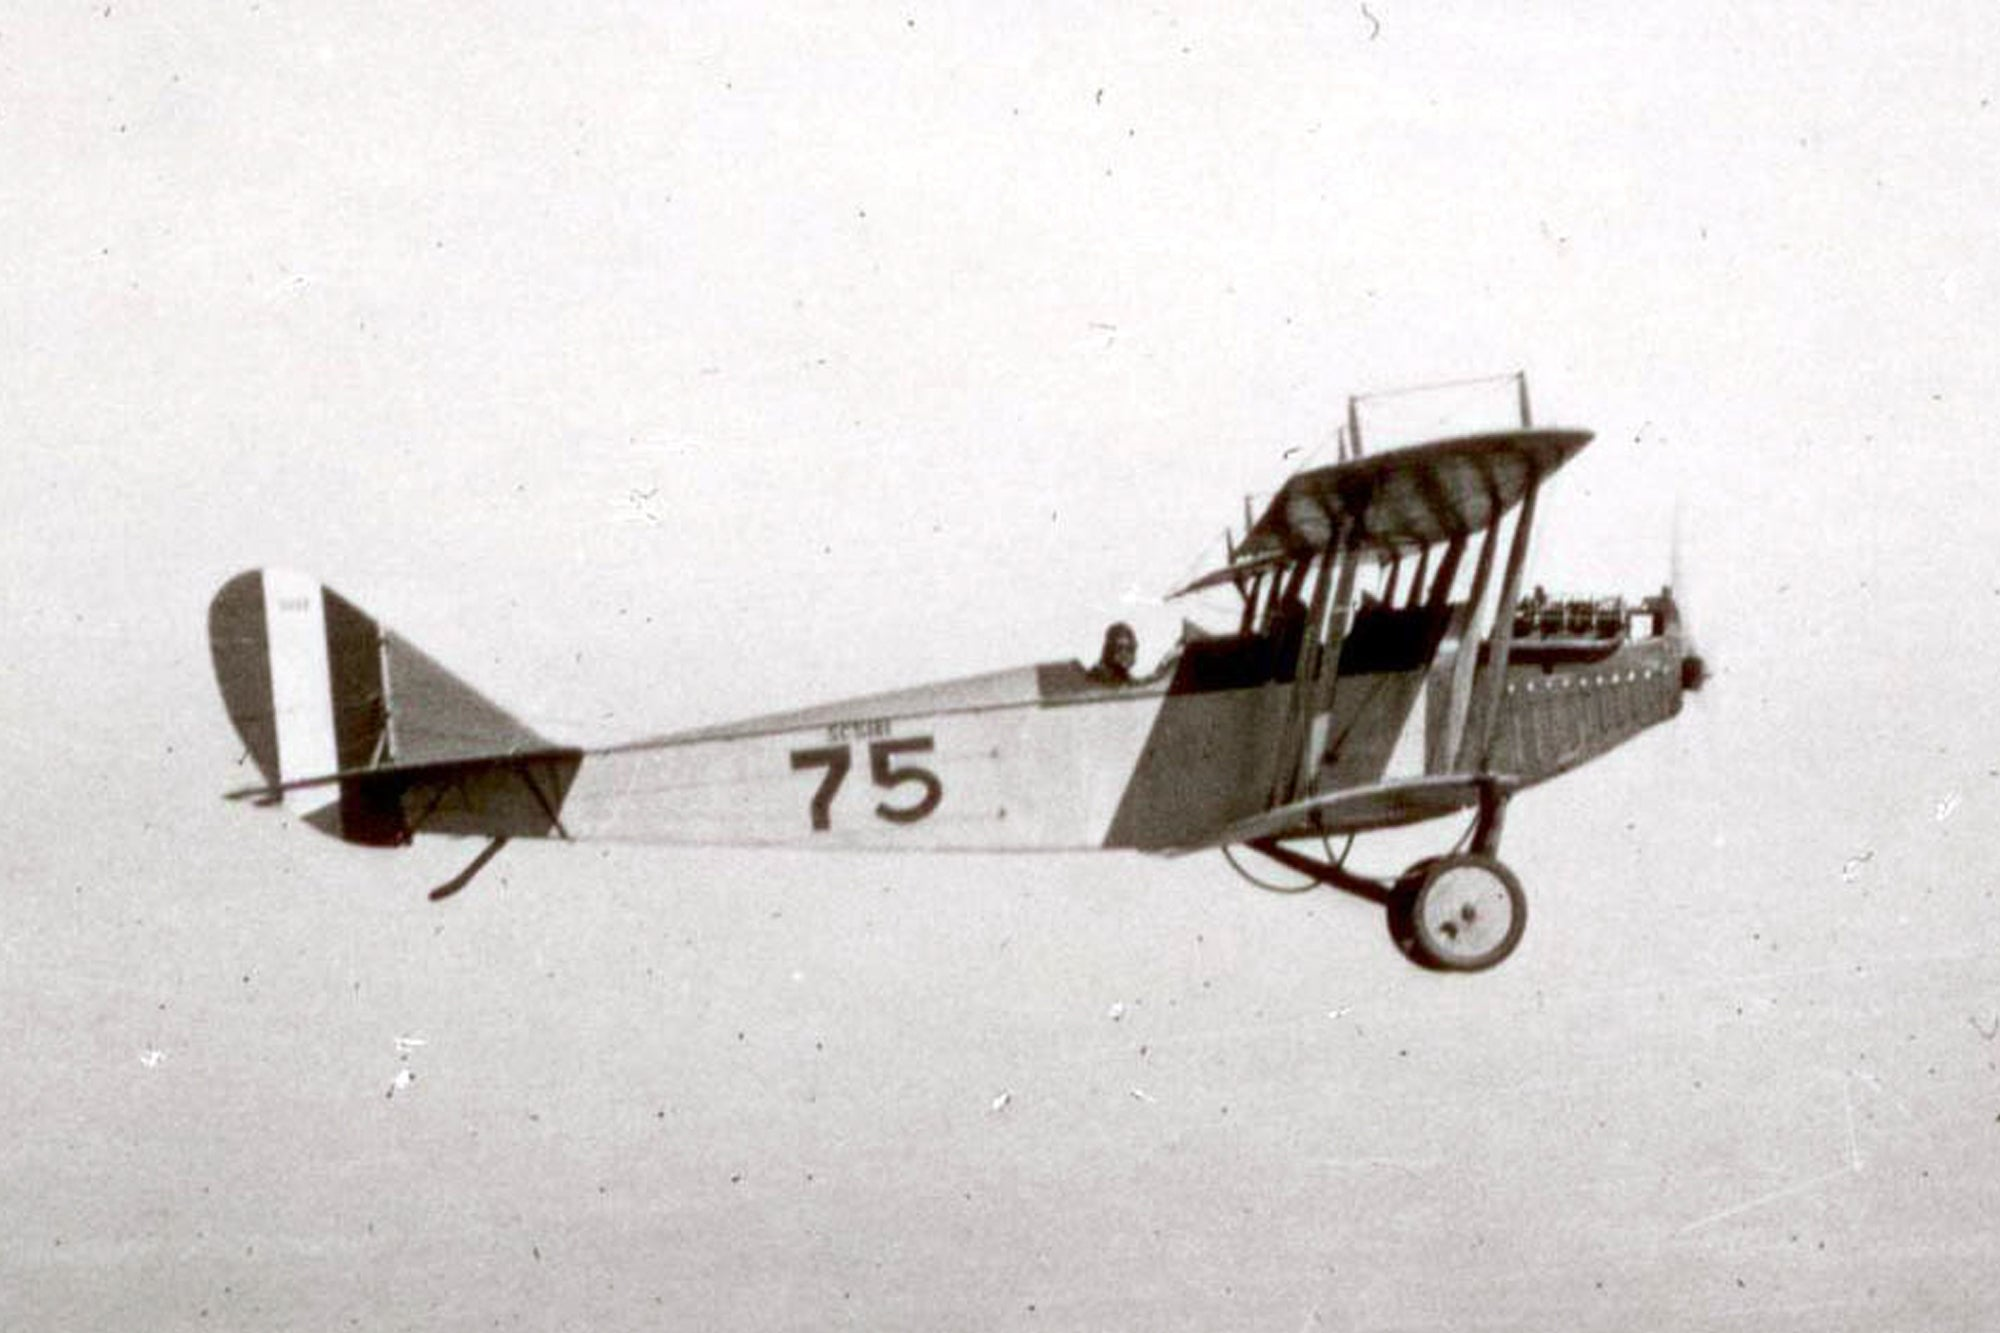 Charles Lindbergh's first plane, a Curtiss JN-4, known as a Jenny